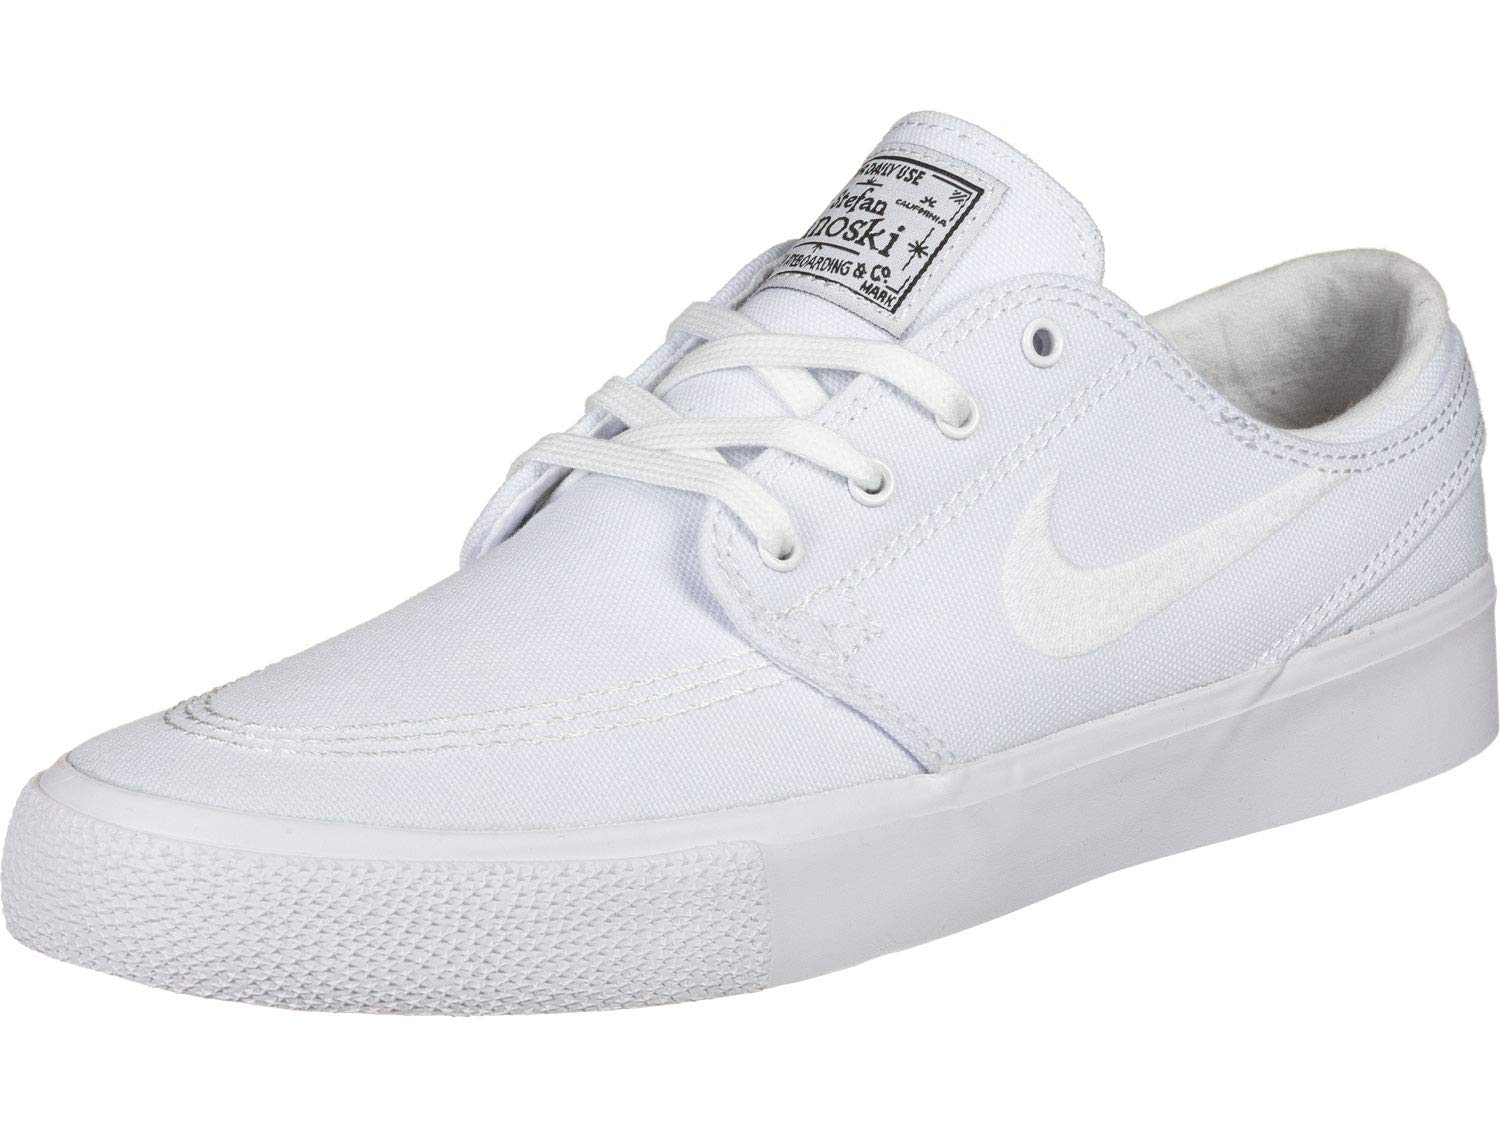 Nike SB Zoom Janoski Canvas Mens Shoes - White/White/Gum Light Brown